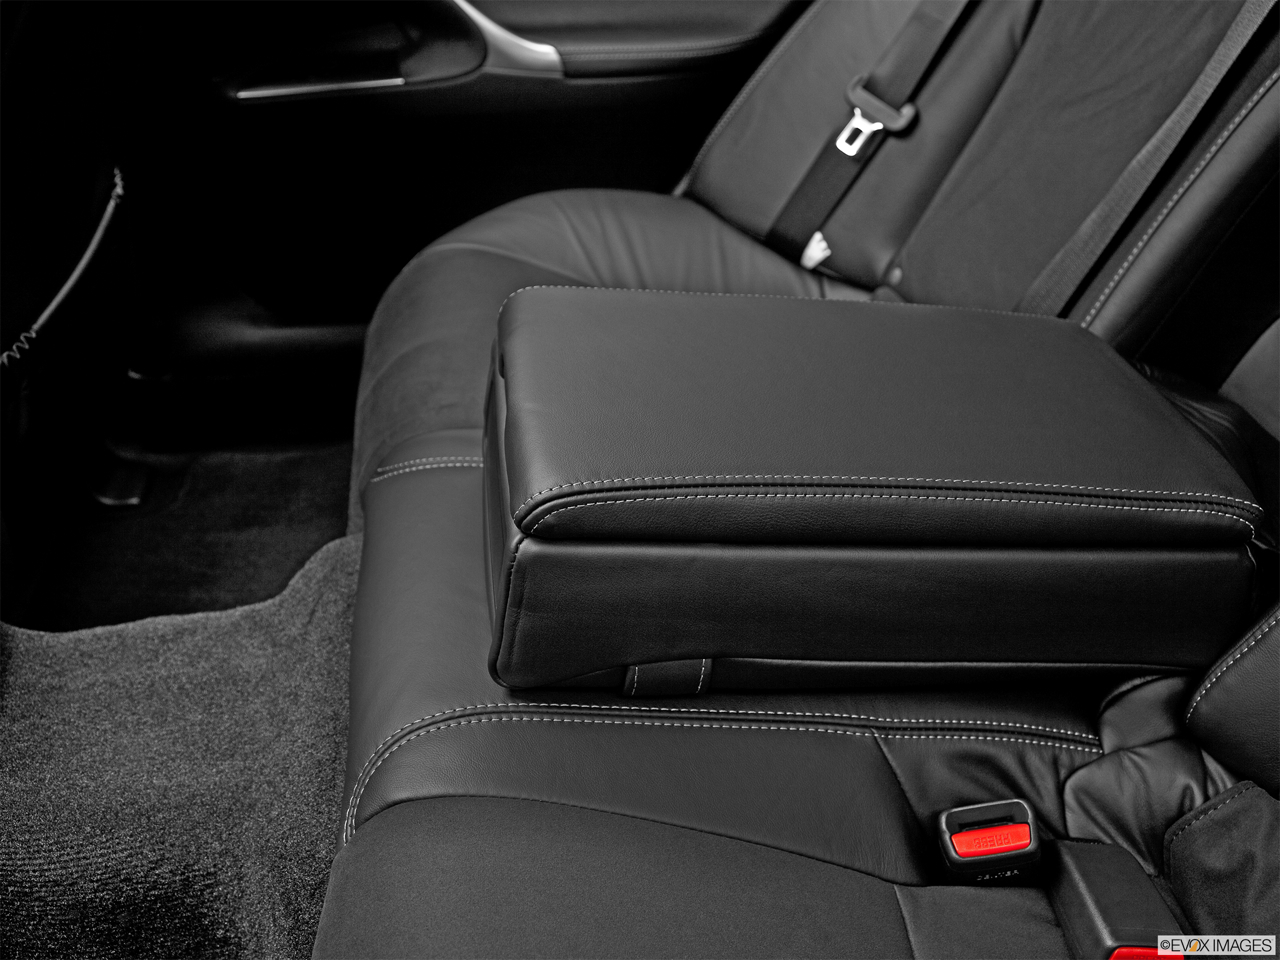 2011 Lexus IS 250 IS250 Rear center console with closed lid from driver's side looking down.